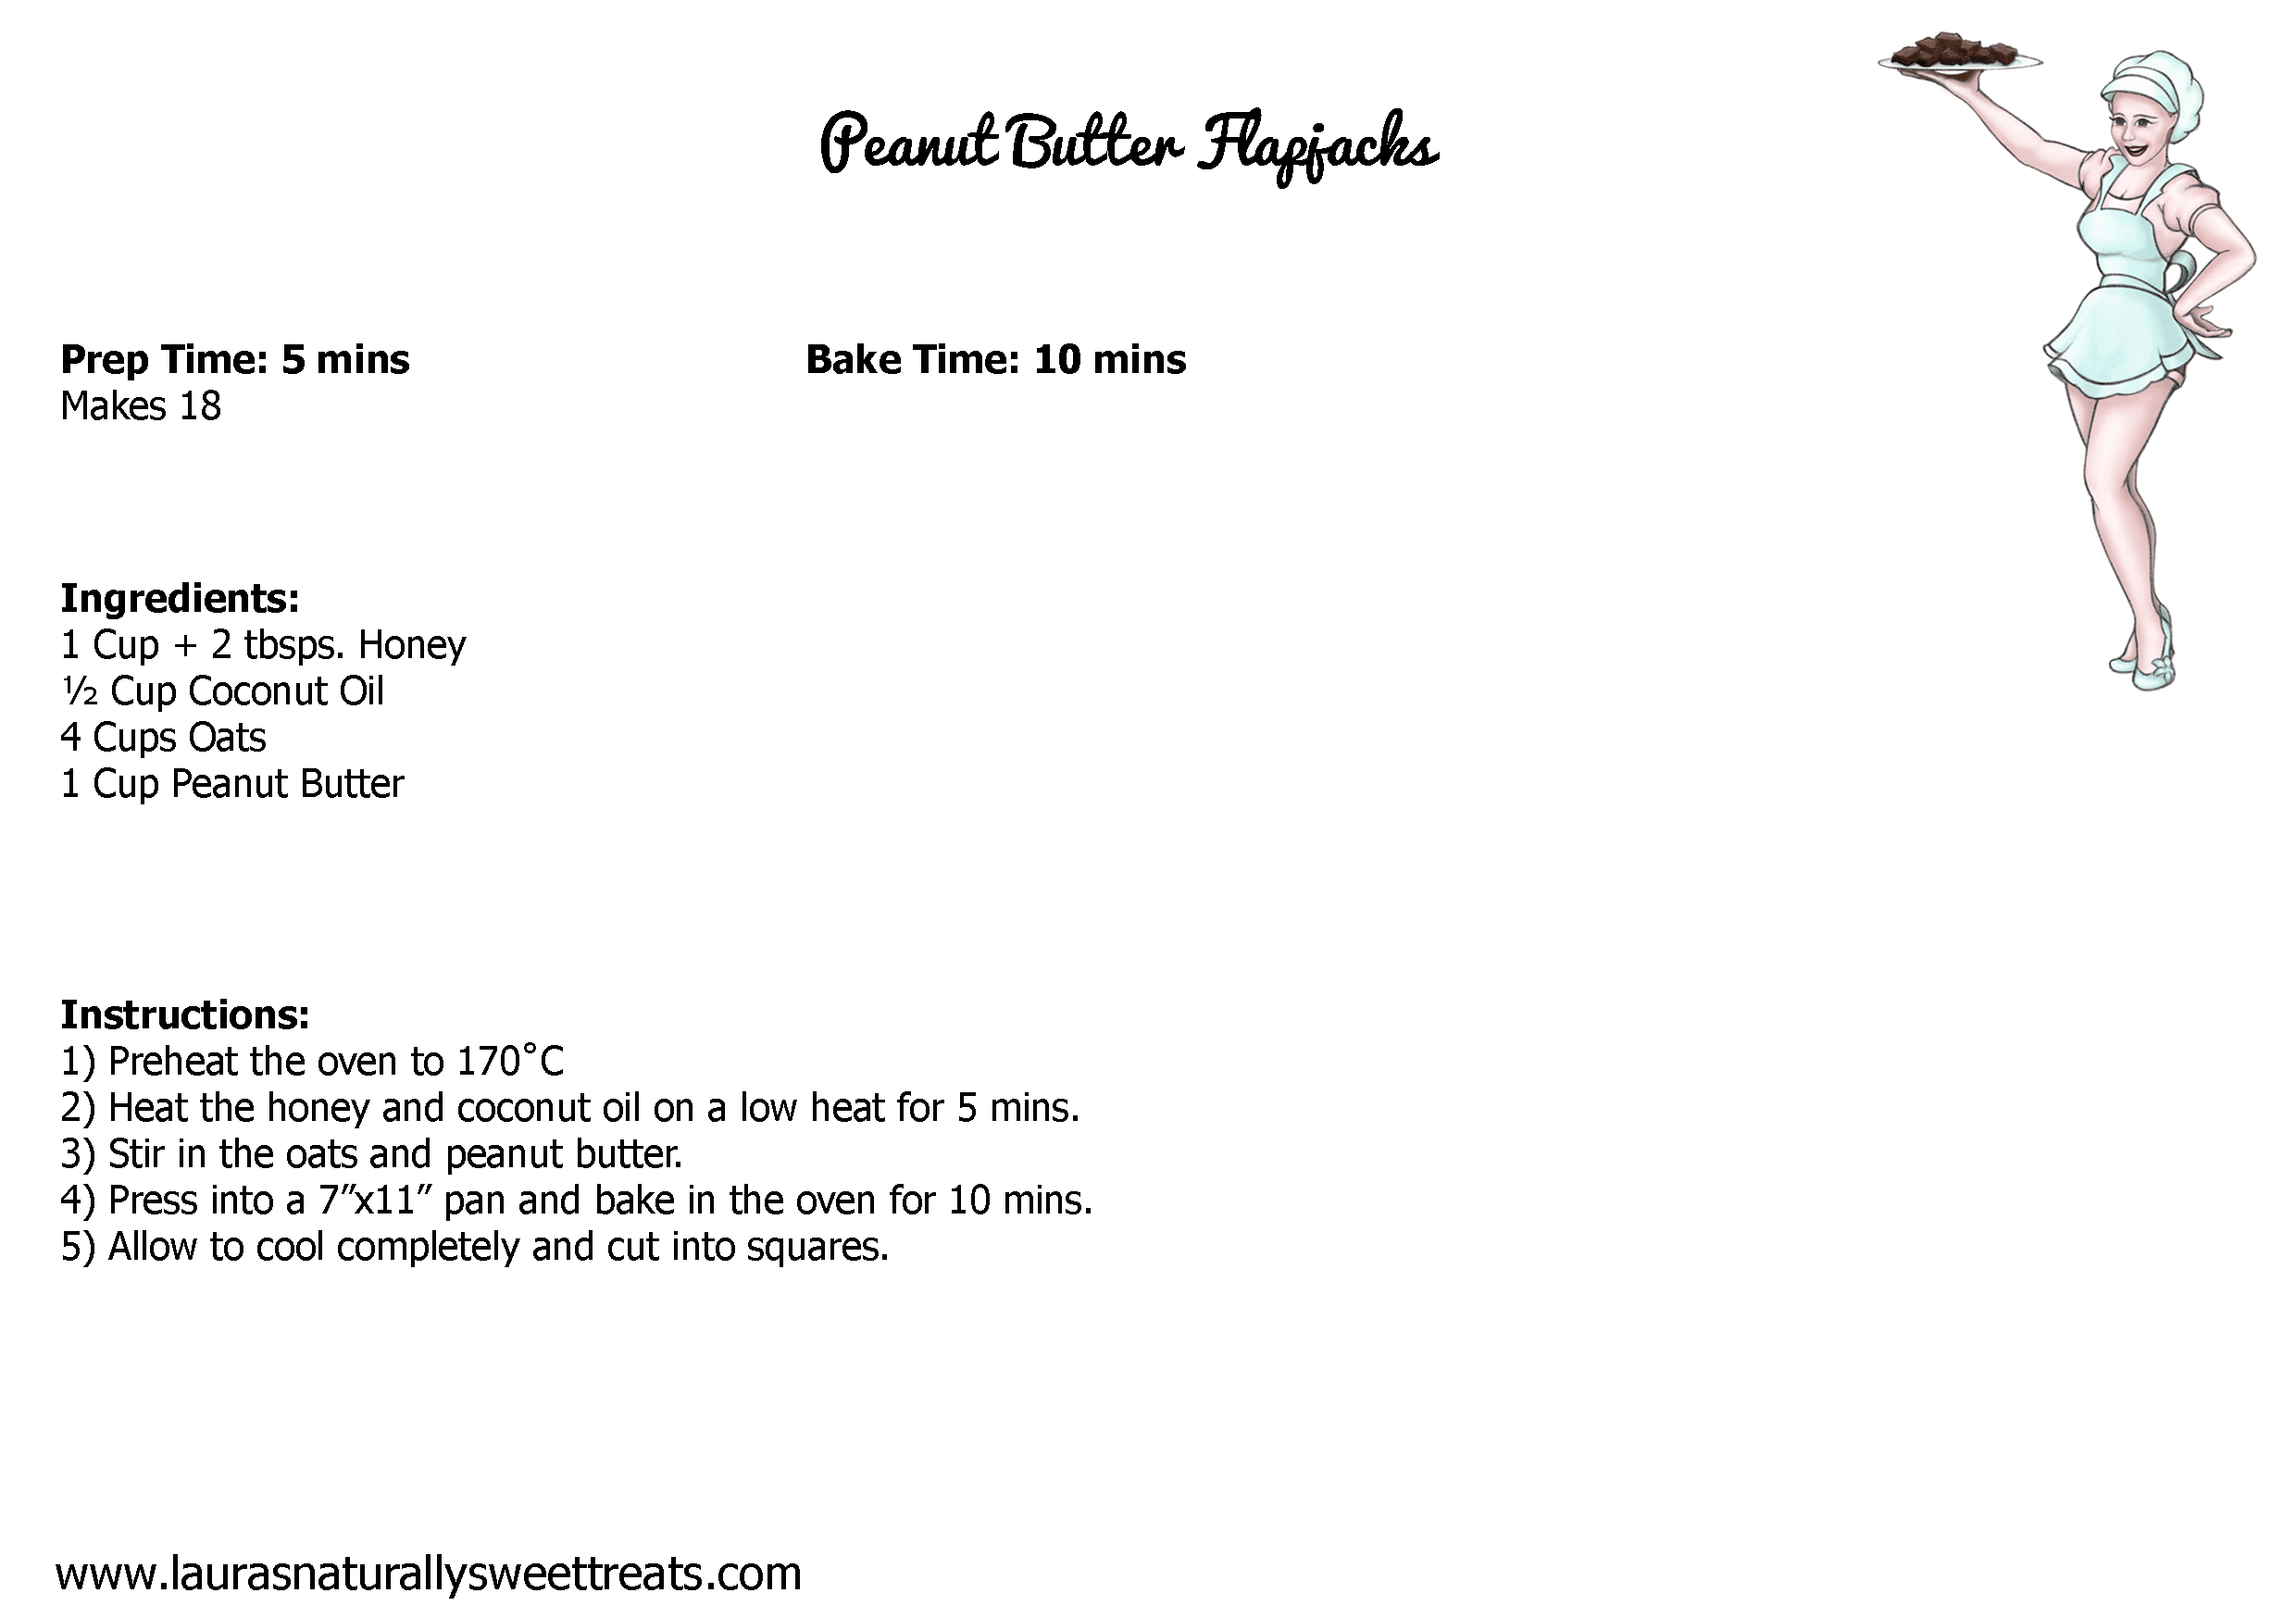 peanut-butter-flapjacks-recipe-card